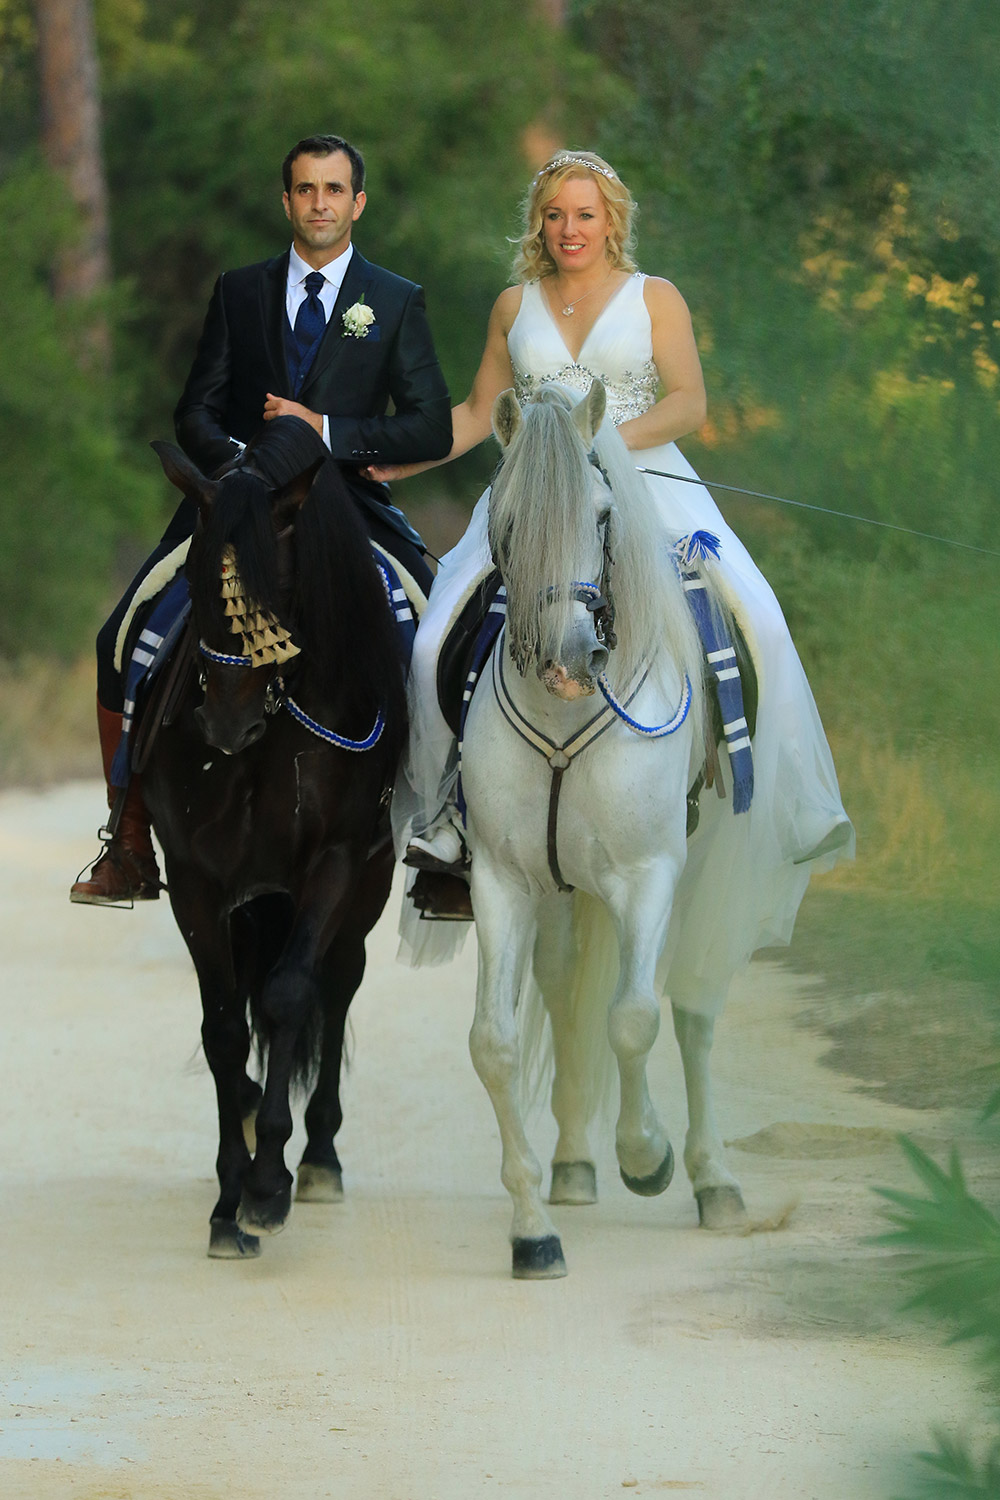 odette-and-pedro-married-photo-on-horses-1500pxl.jpg